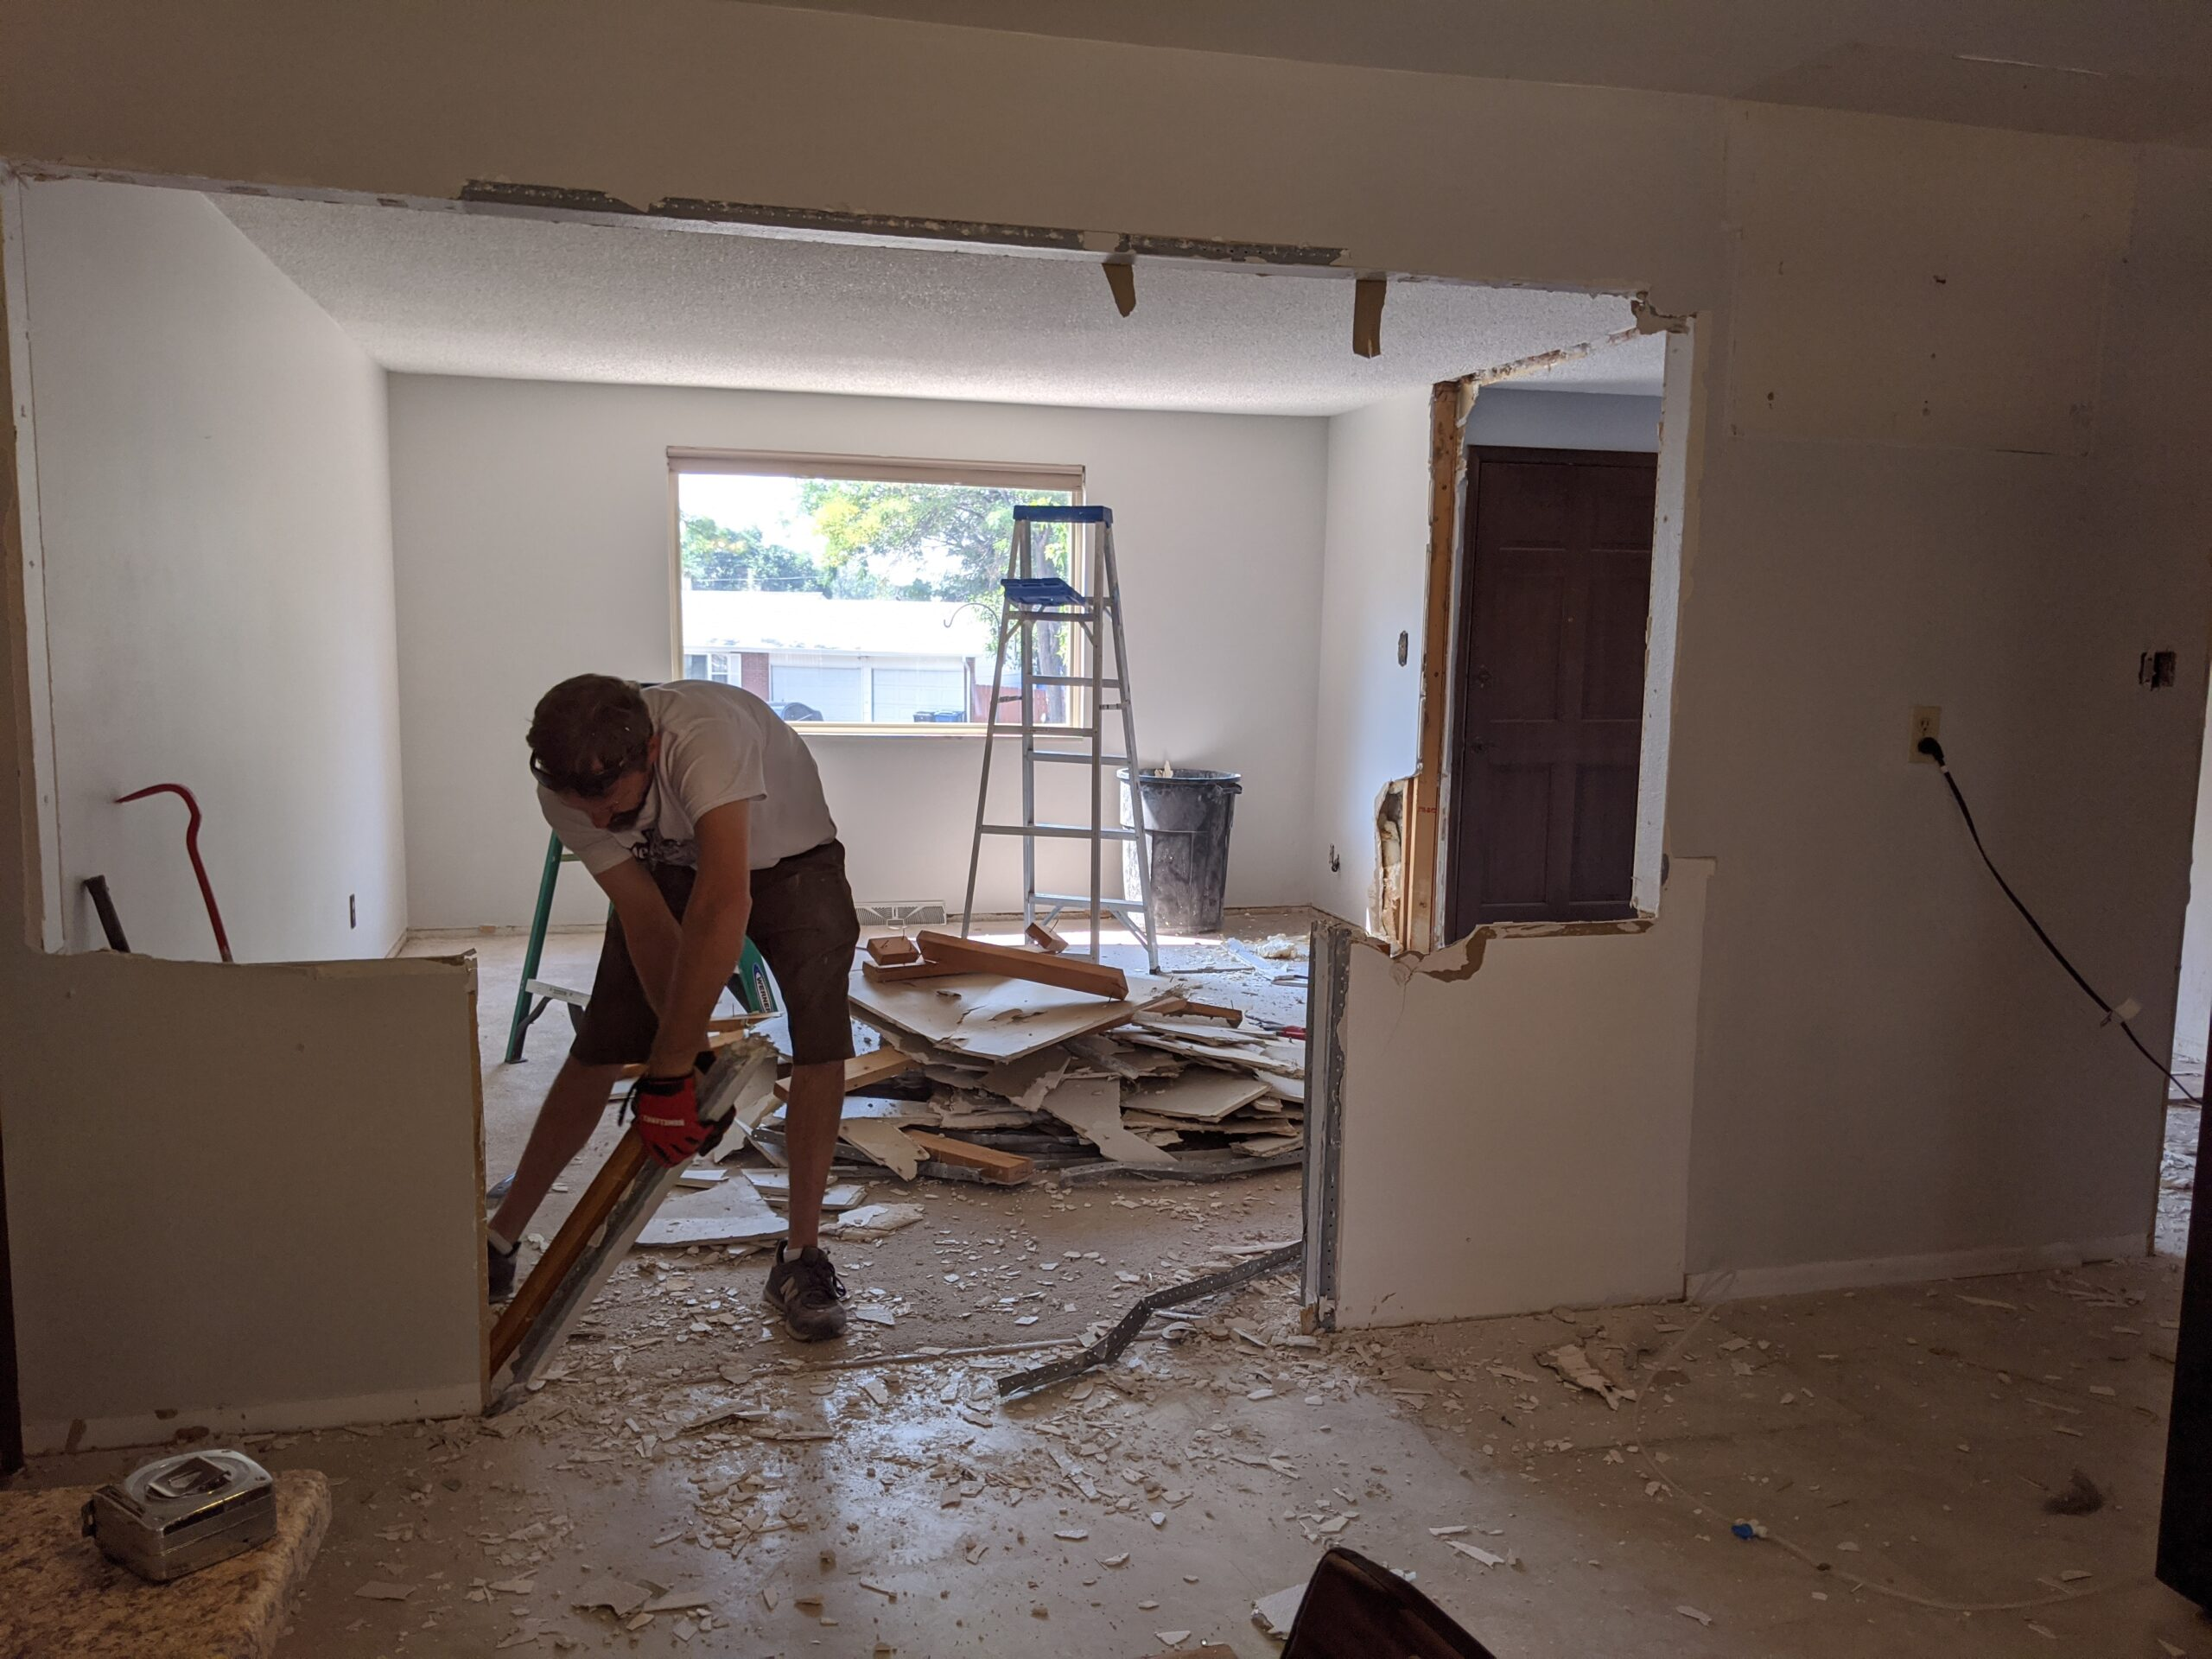 IN PROGRESS Josh cut the framing above the pony walls. Then, he continued to knock down the old wall.